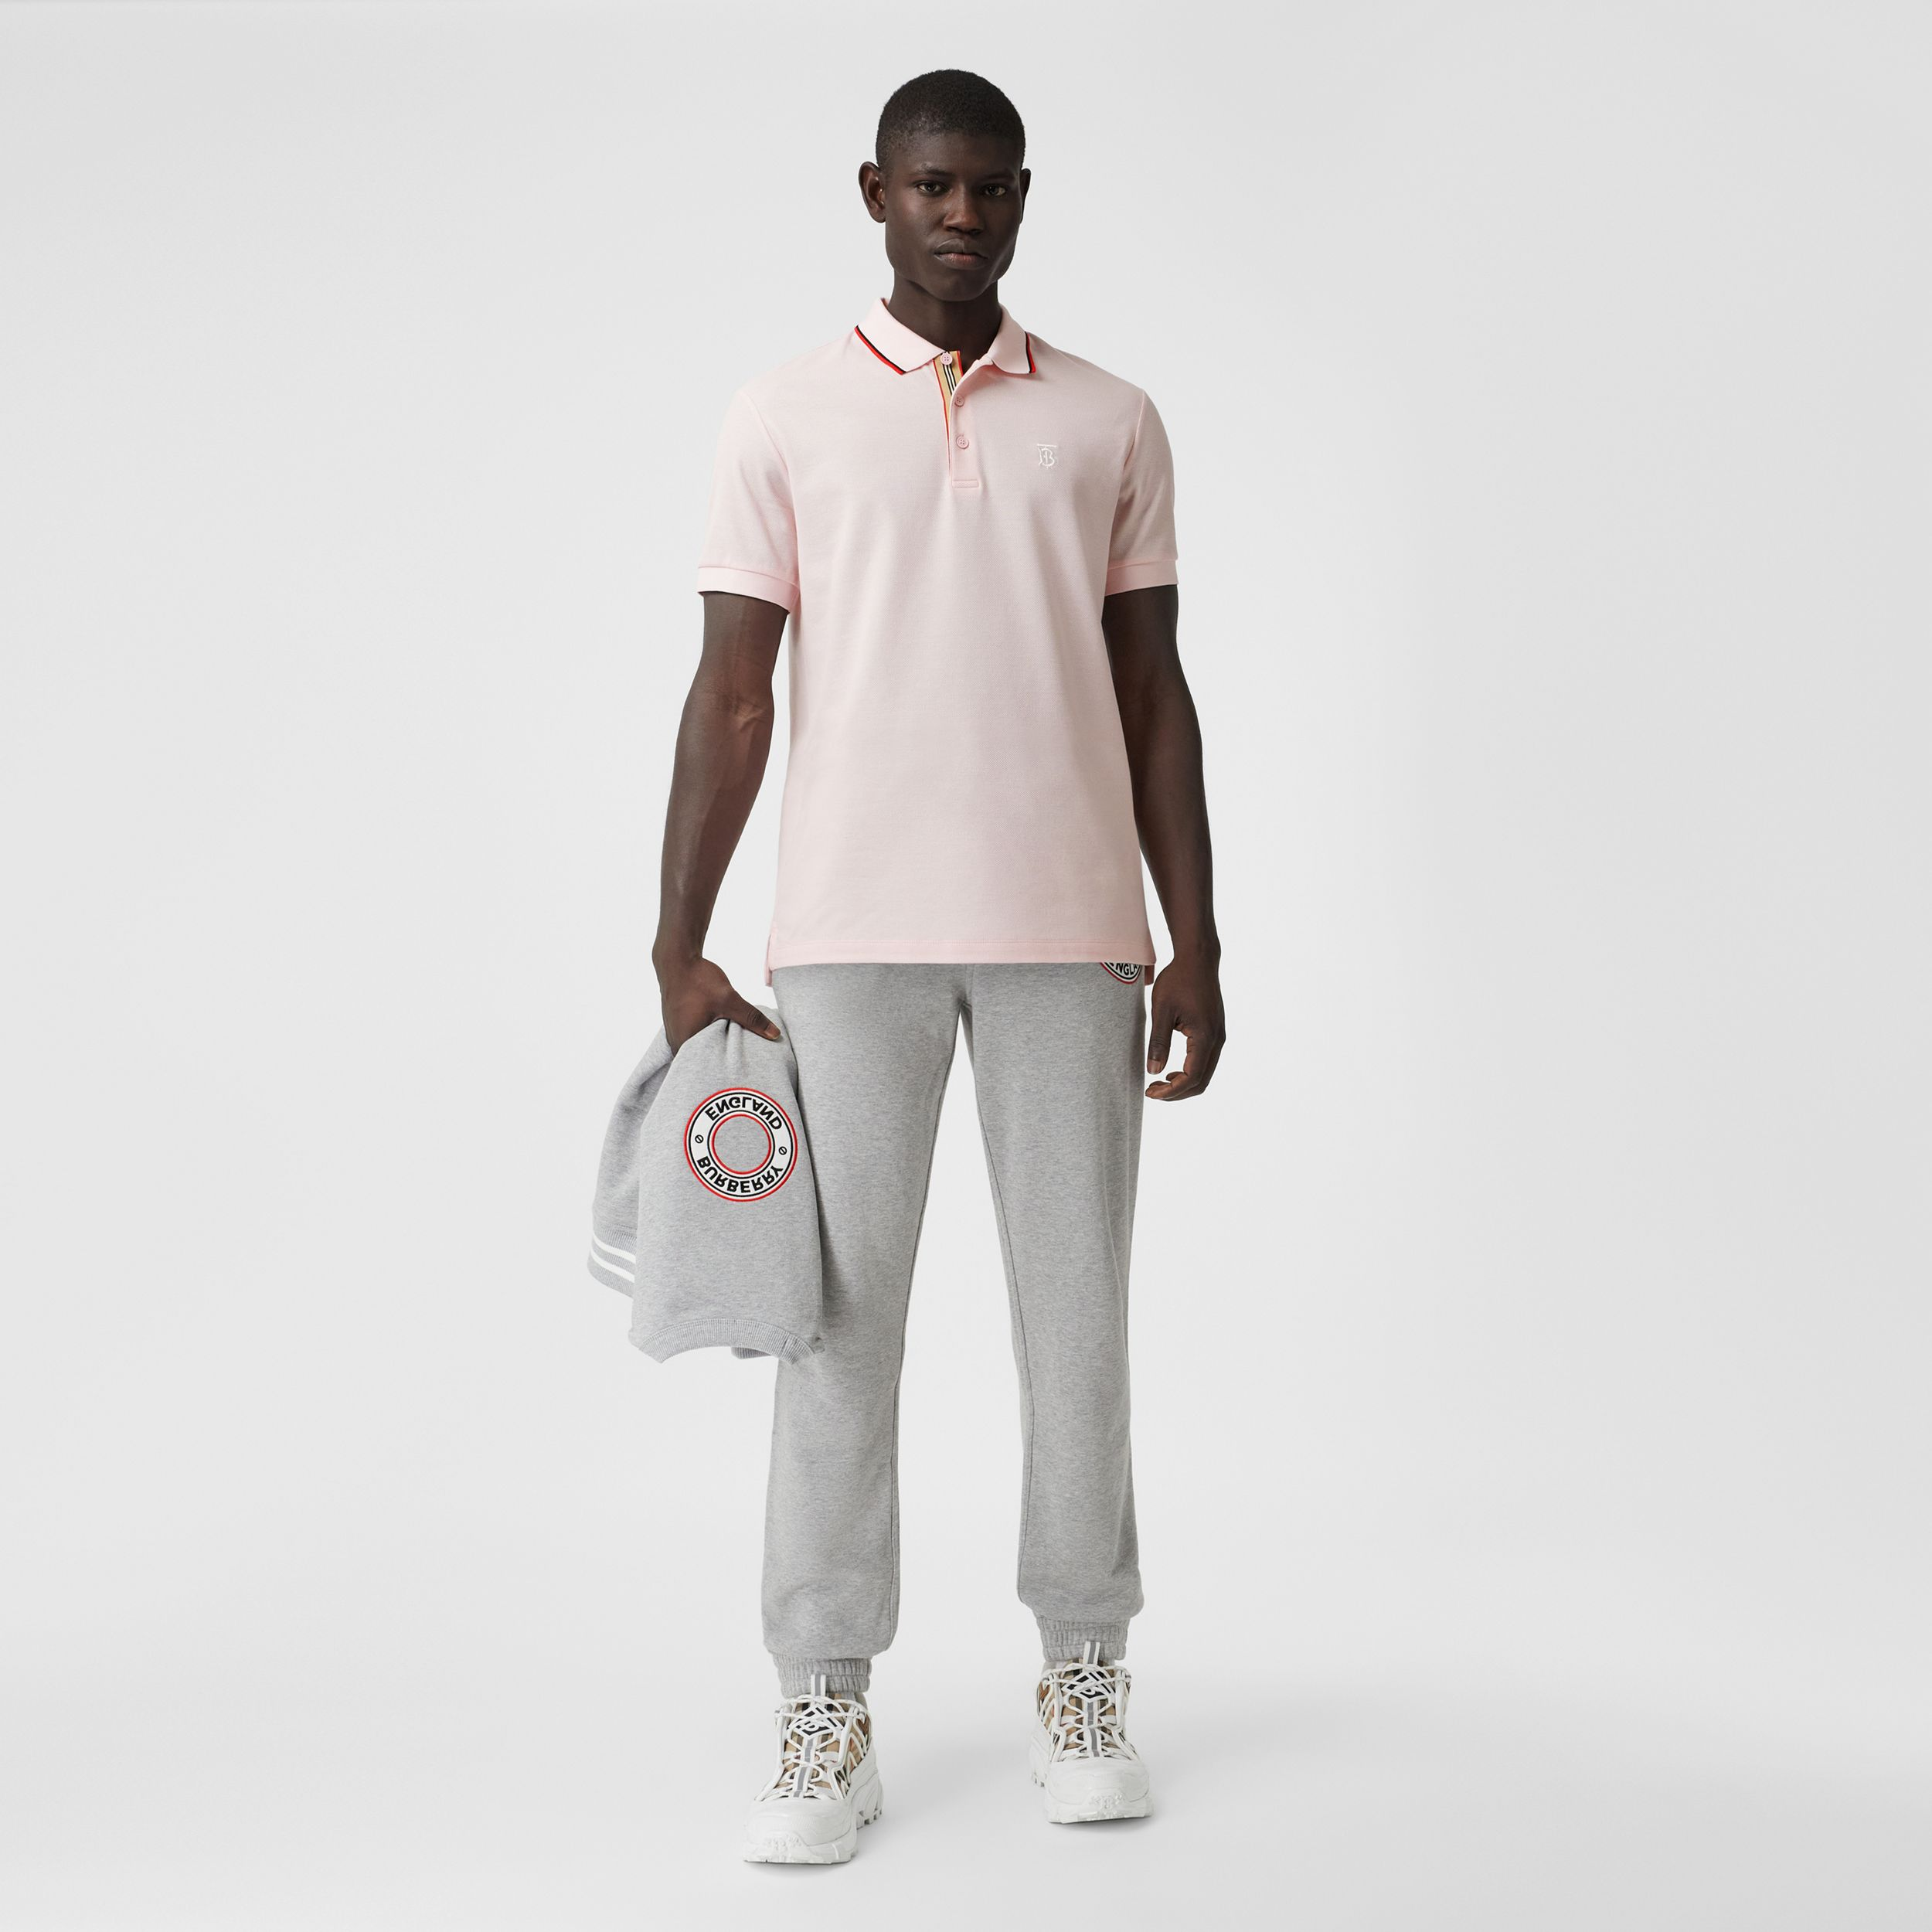 Monogram Motif Cotton Piqué Polo Shirt in Frosted Pink - Men | Burberry - 4